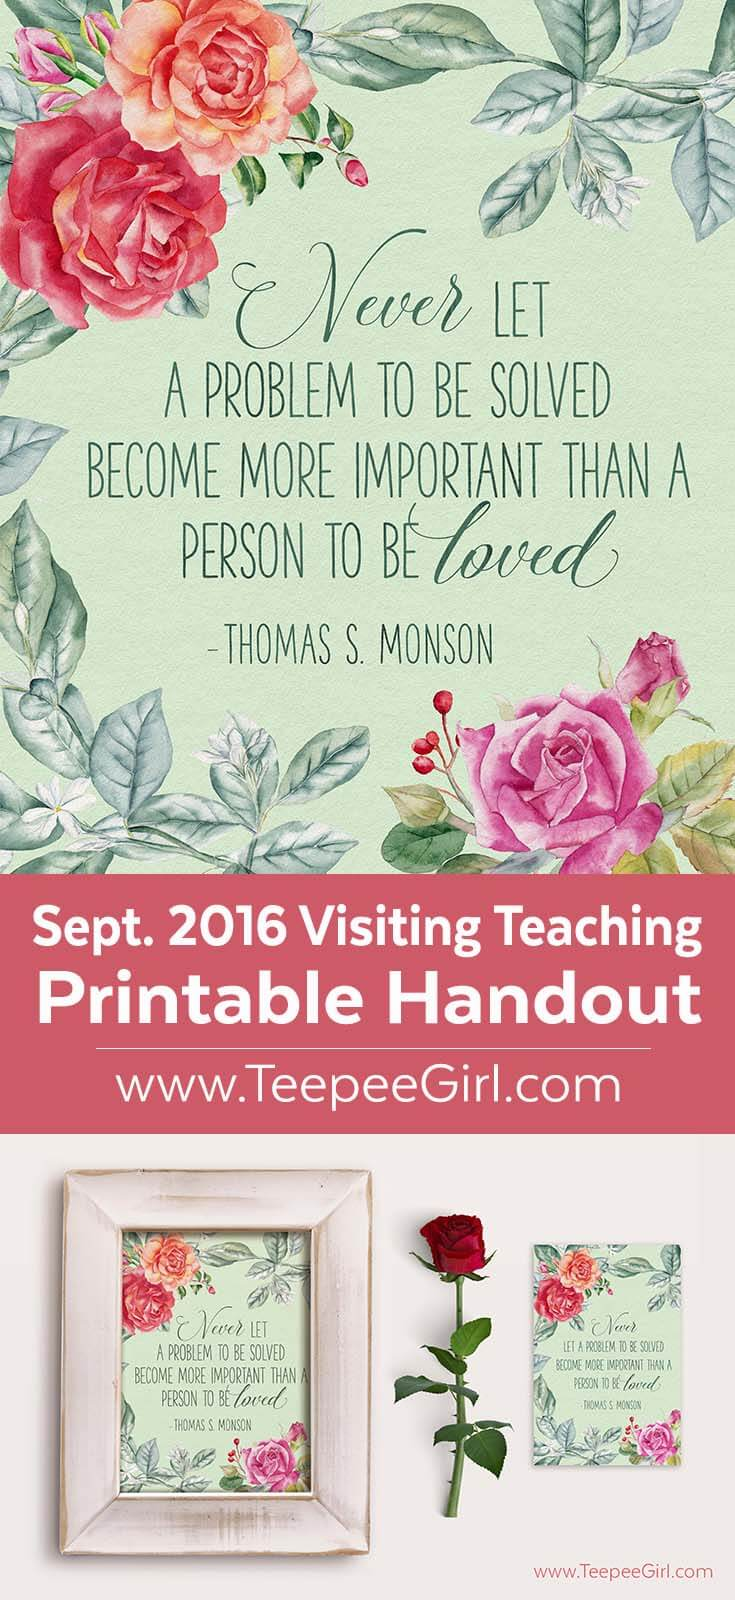 This free printable comes in two sizes (8x10 & 4x6) and is perfect for September visiting teaching or as an inspiration thought. Paired with a frame, it makes a great gift!! www.TeepeeGirl.com